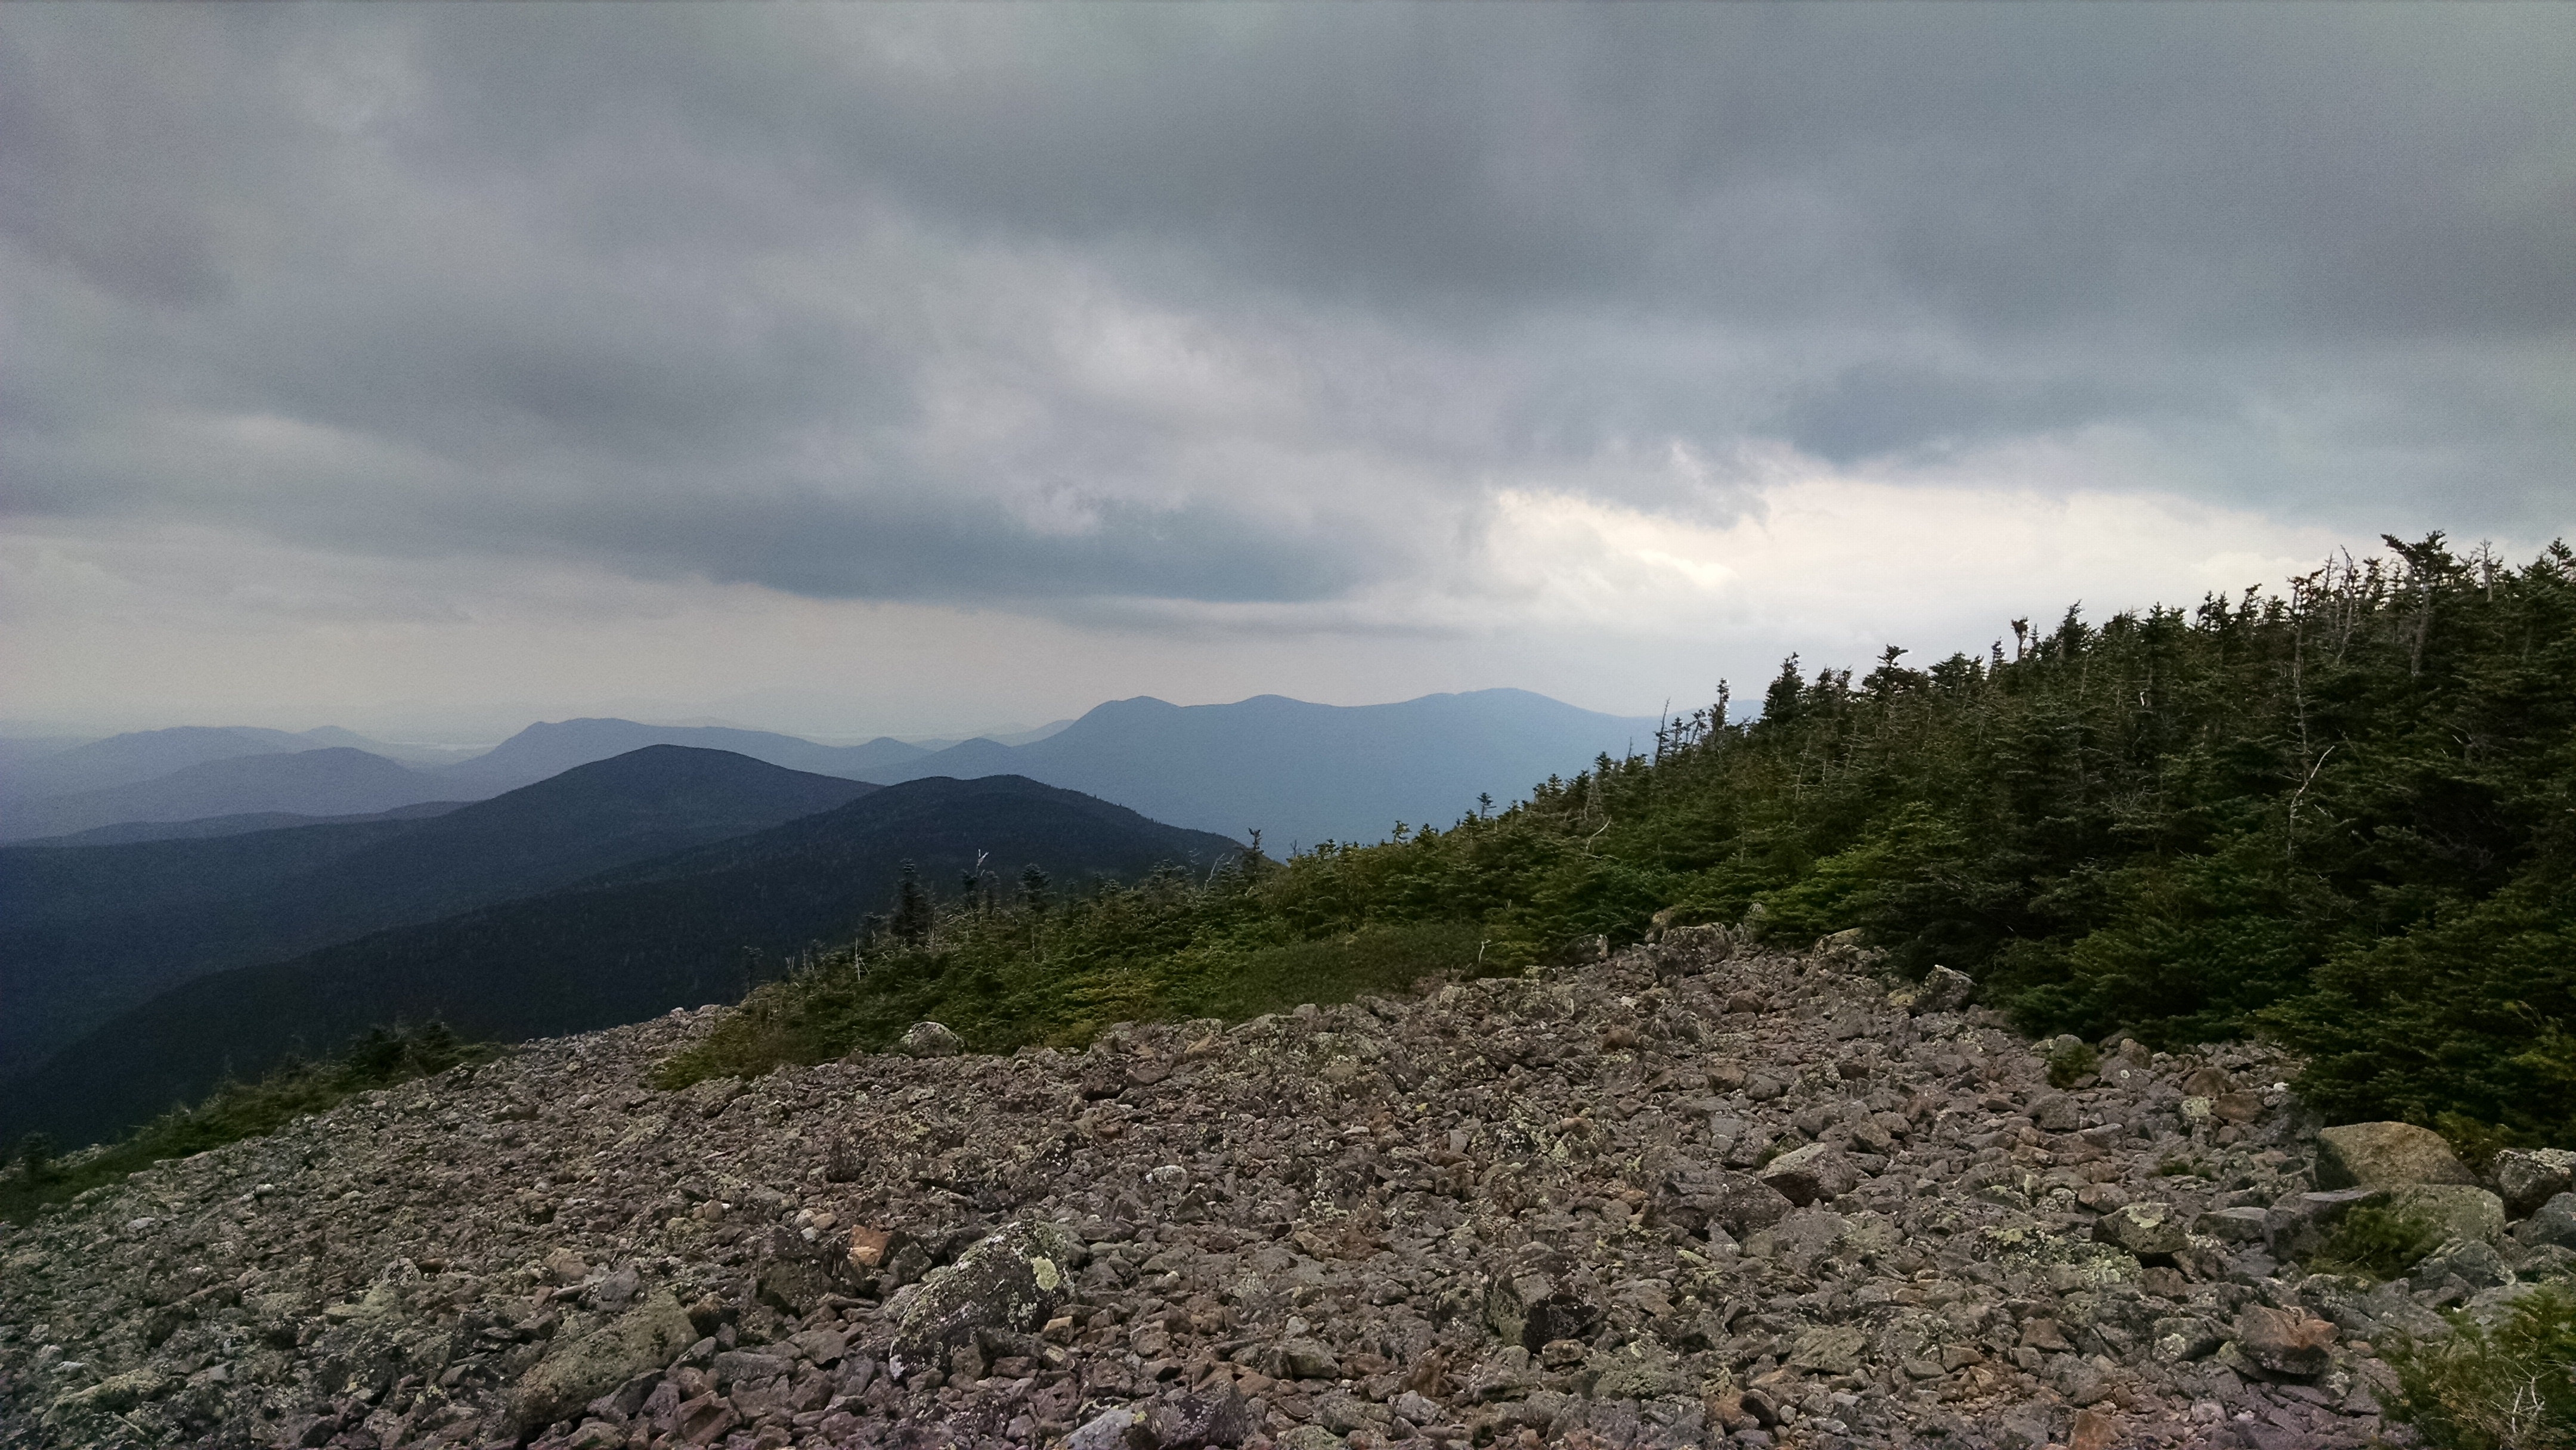 View from the summit of White Cap Mountain, west towards West Peak and Gulf Hagas Mountain.